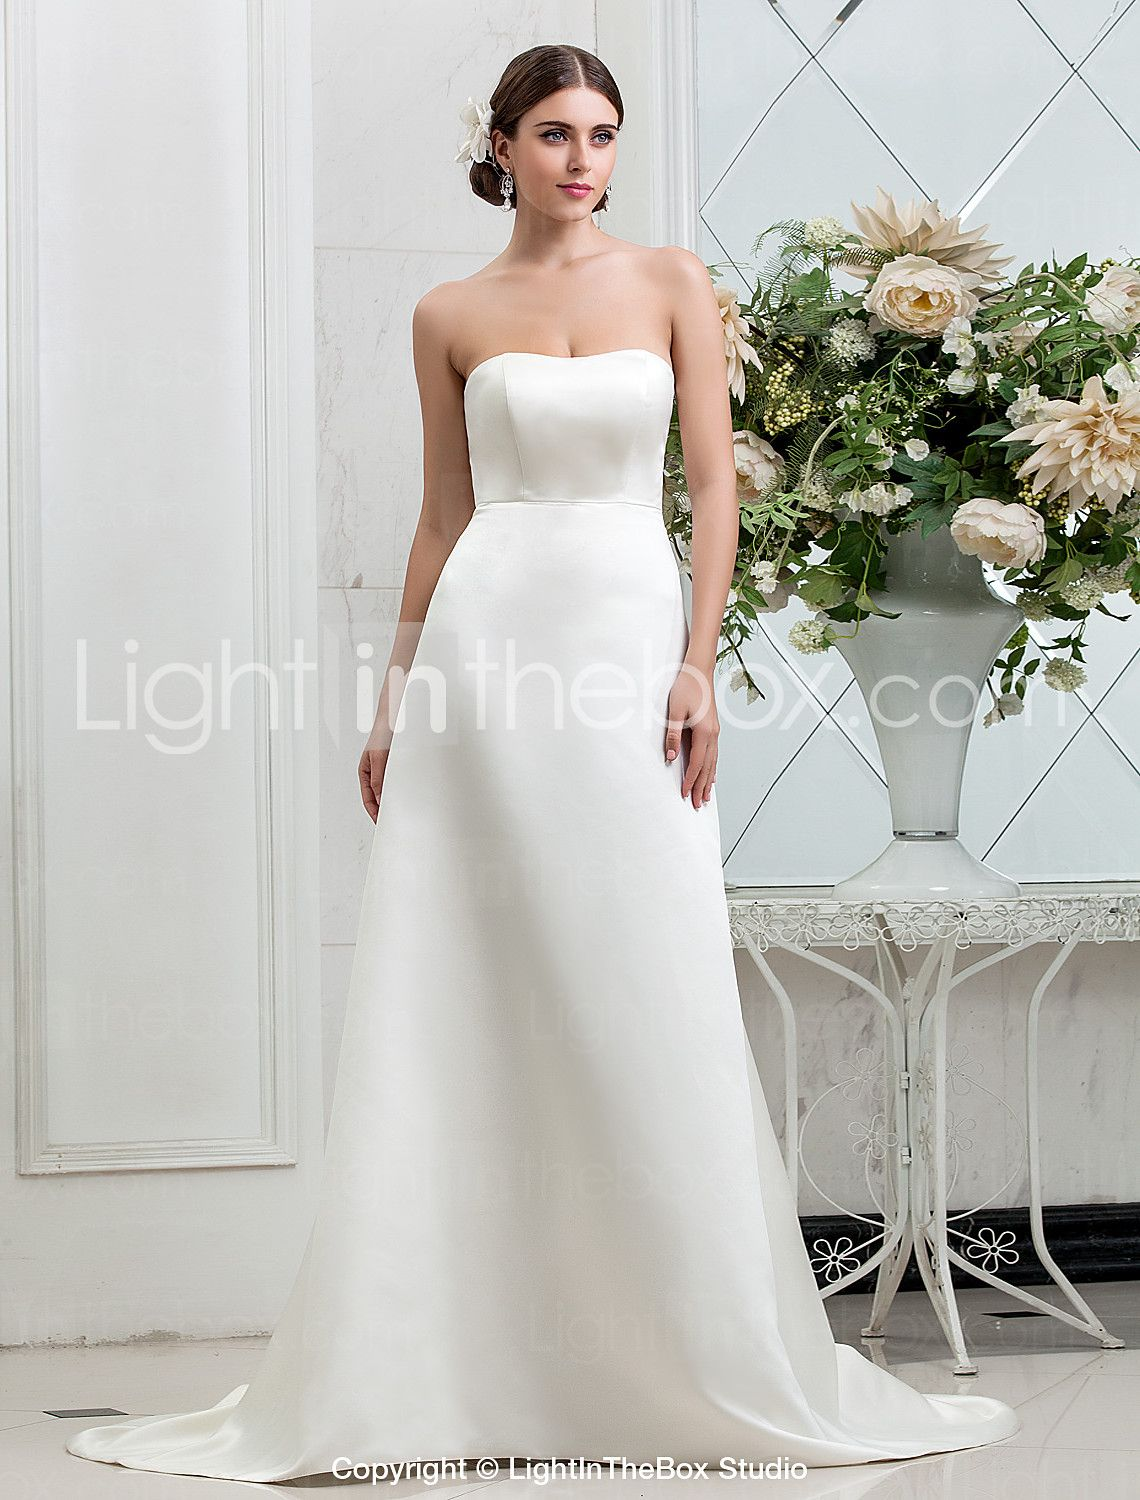 Lightinthebox wedding dresses  ALine Strapless Sweep  Brush Train Satin Wedding Dress with Button